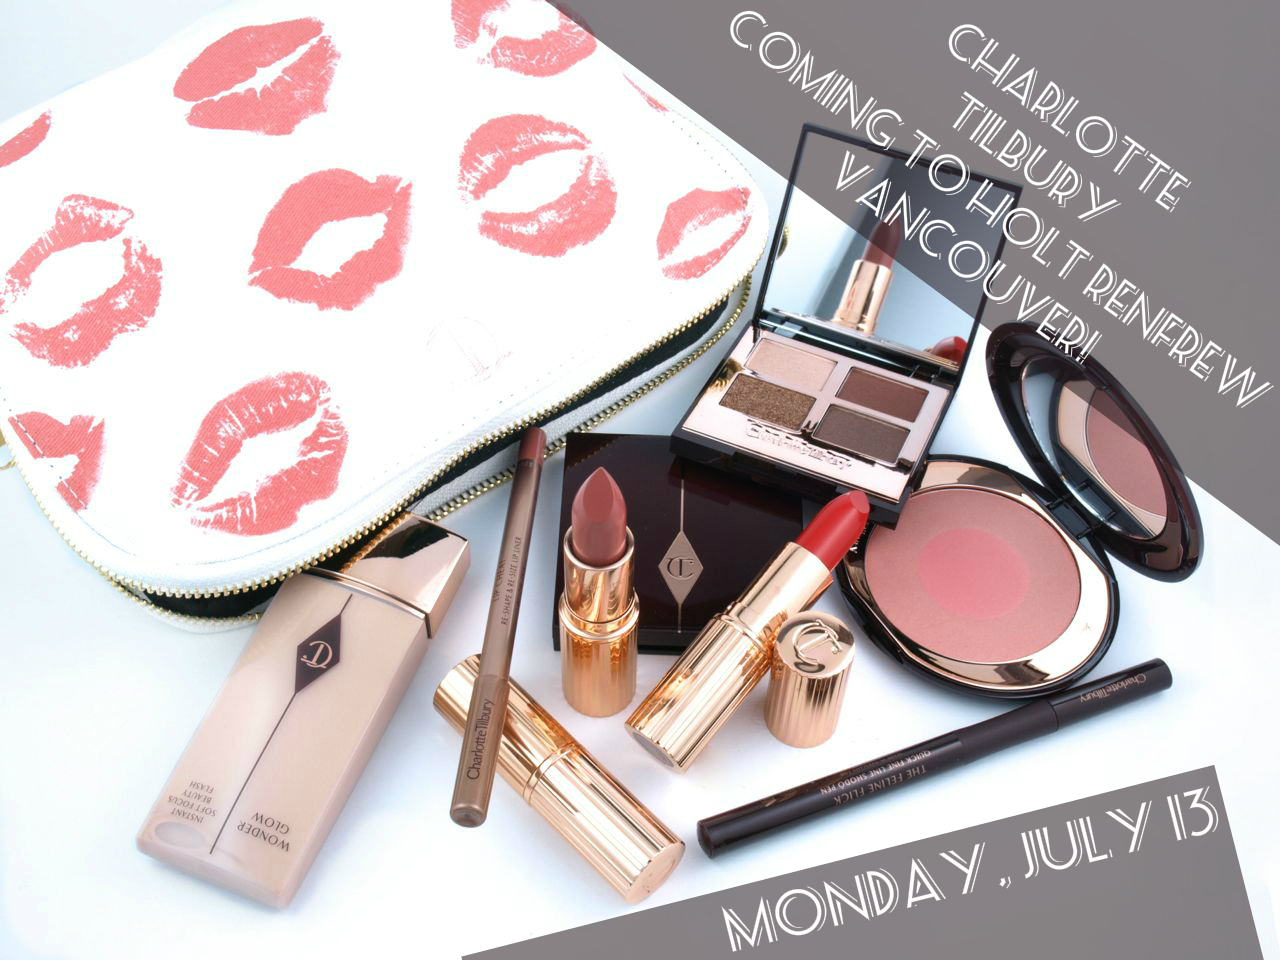 Launching July 13th: Charlotte Tilbury at Holt Renfrew Vancouver!